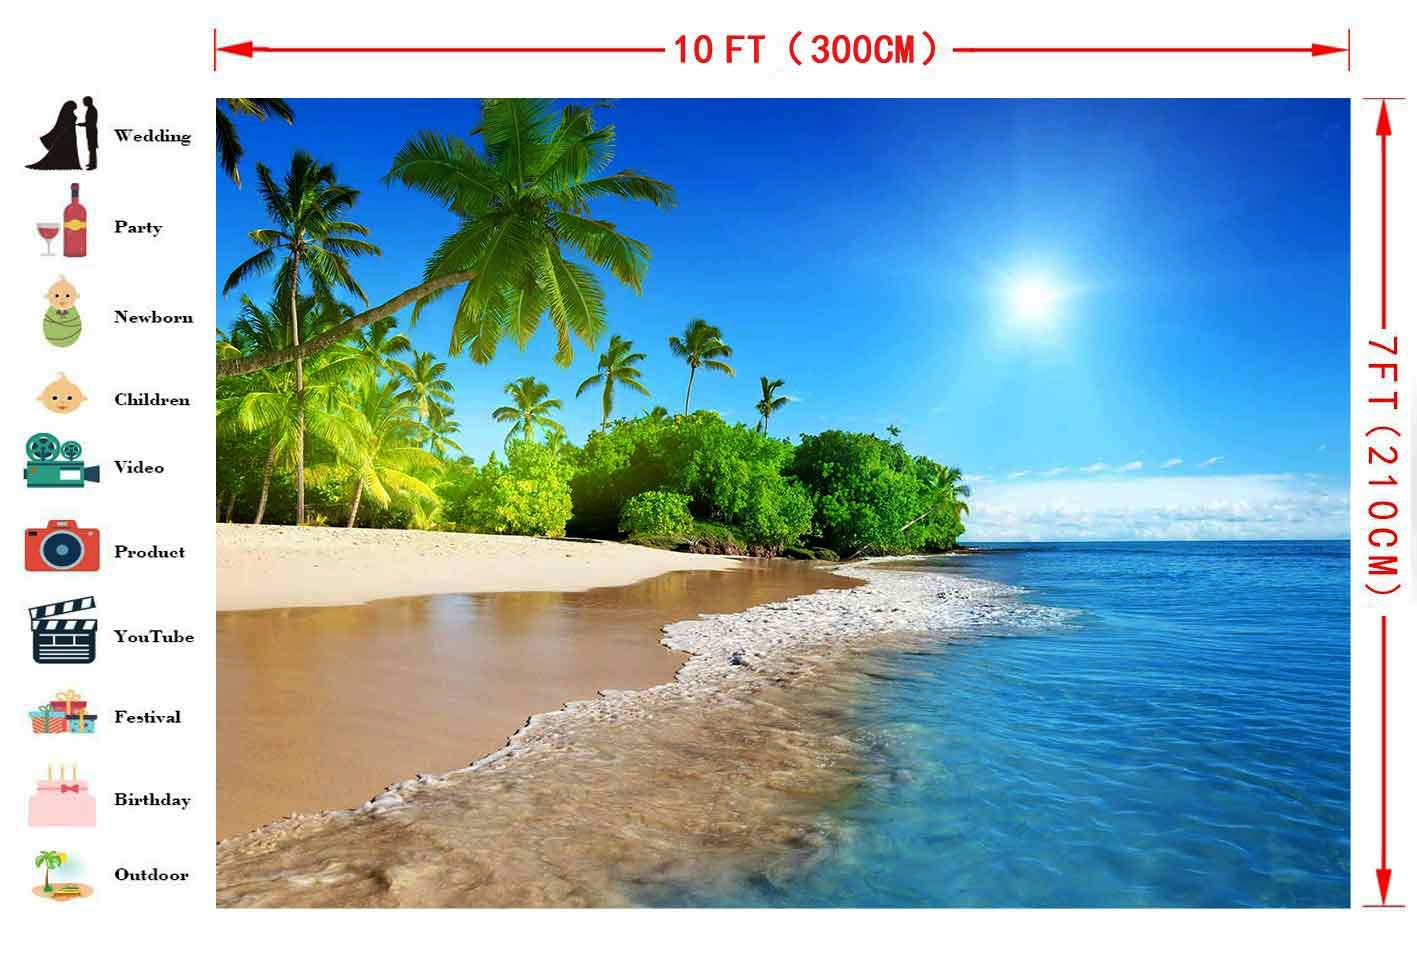 FHZON 10x7ft Summer Sunshine Backdrop Beach Coast Tropical Paradise Blue Sea Sky Coconut Tree Photography Background Themed Party YouTube Backdrop Photo Booth Studio Props FH1200 by FHZON (Image #2)